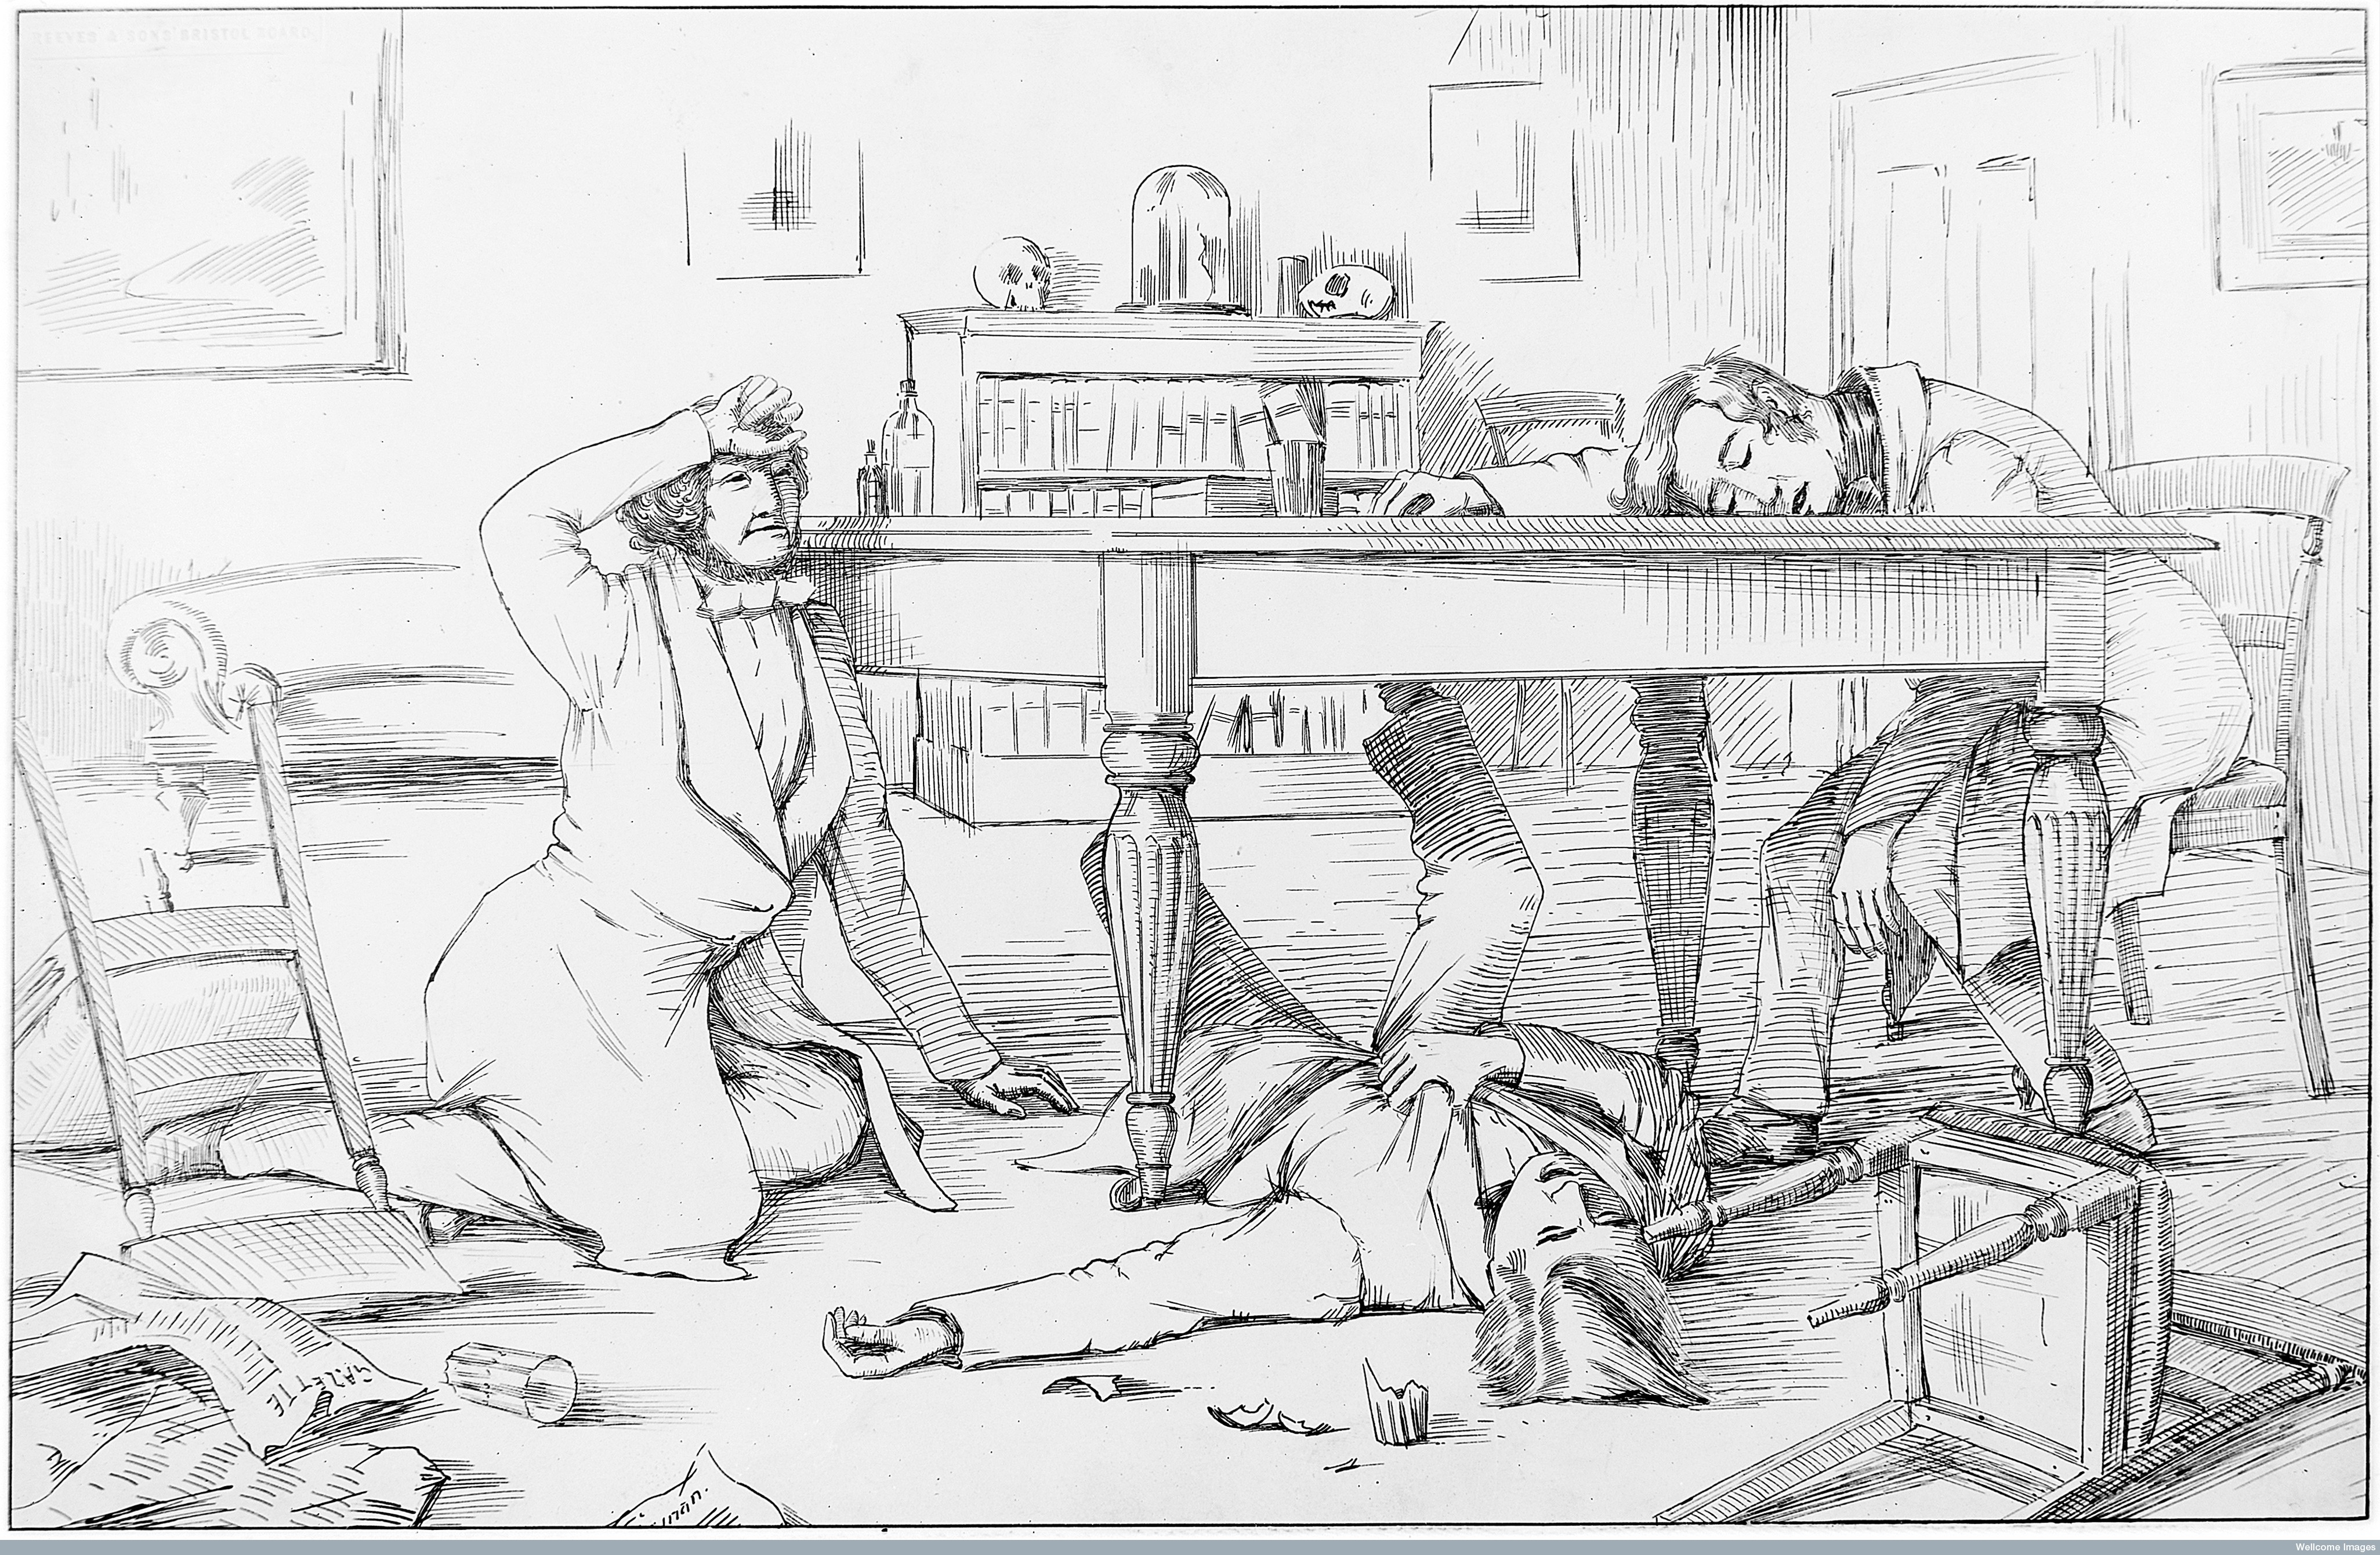 The dinner party where the effects of chloroform were discovered by Simpson and his assistants, 4 November 1847.